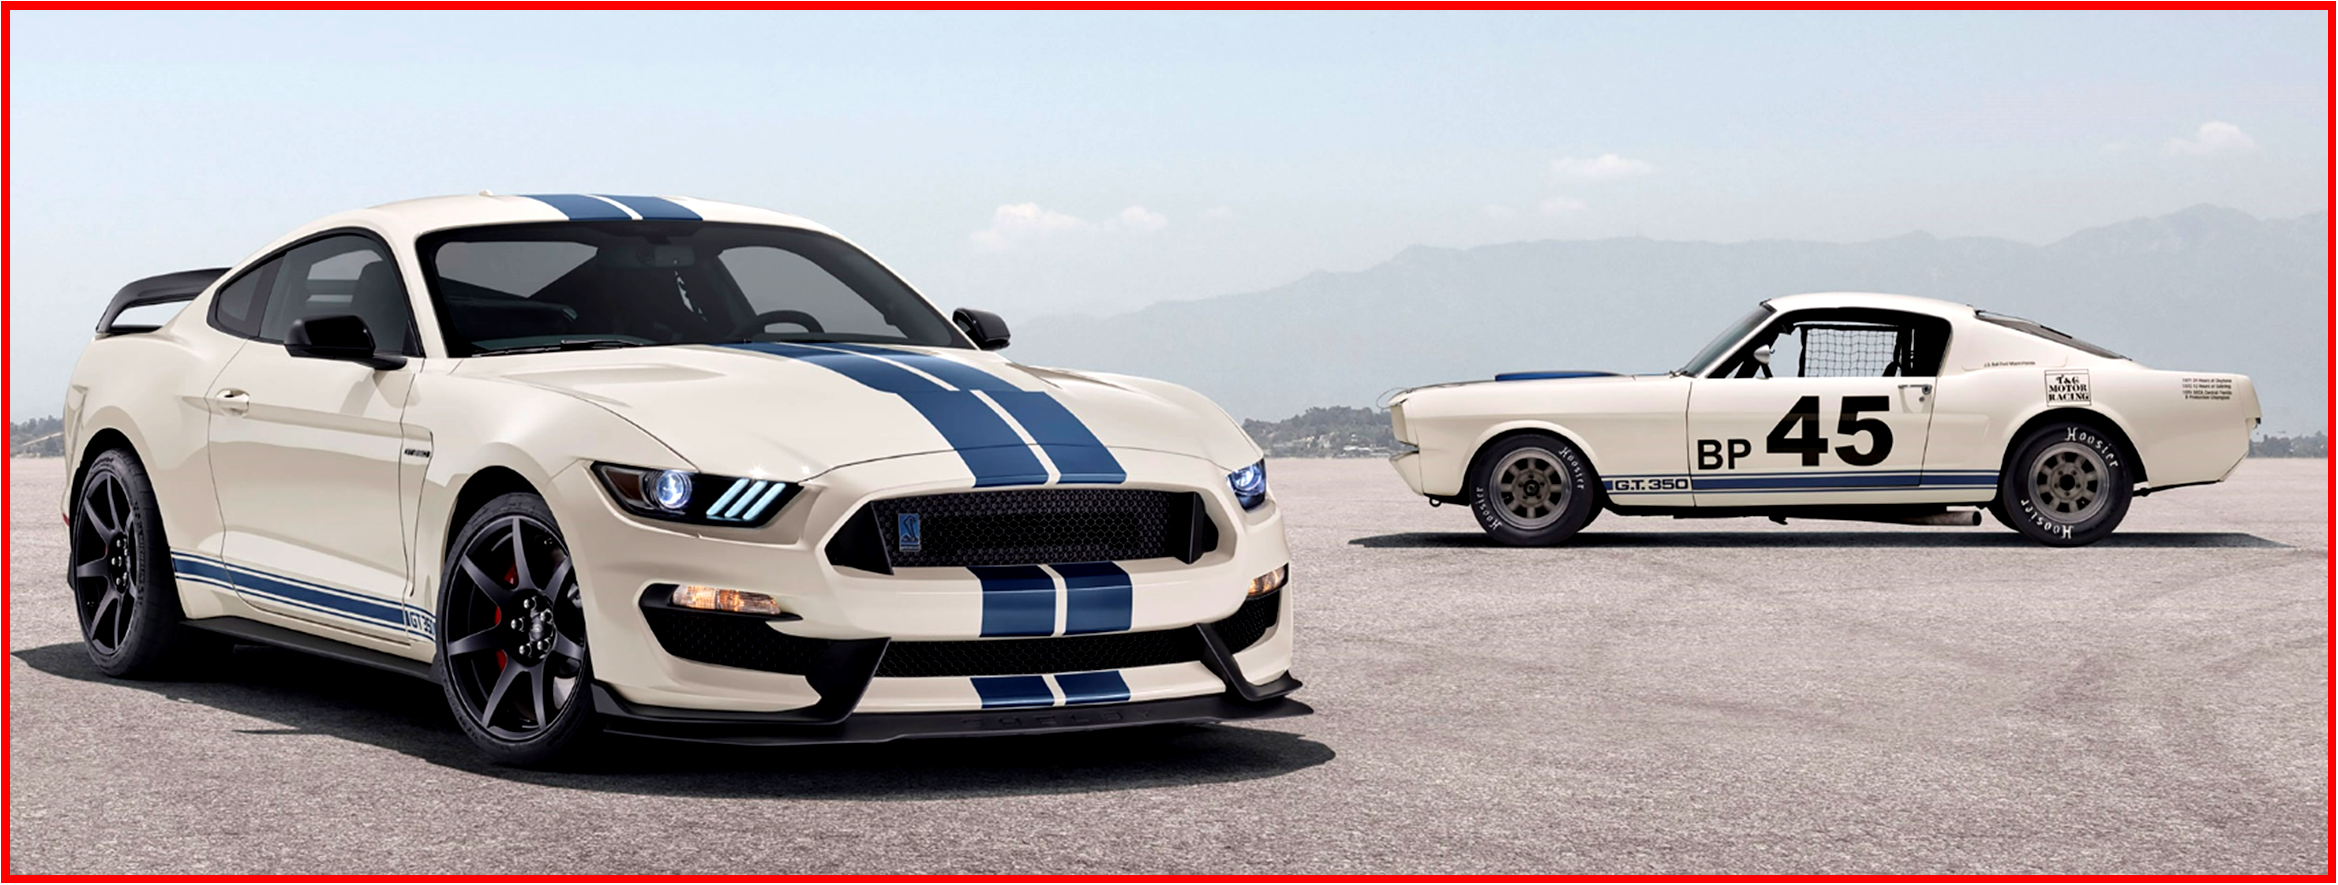 AutoInformed.com on Shelby GT350 Heritage Package - 2020 MY